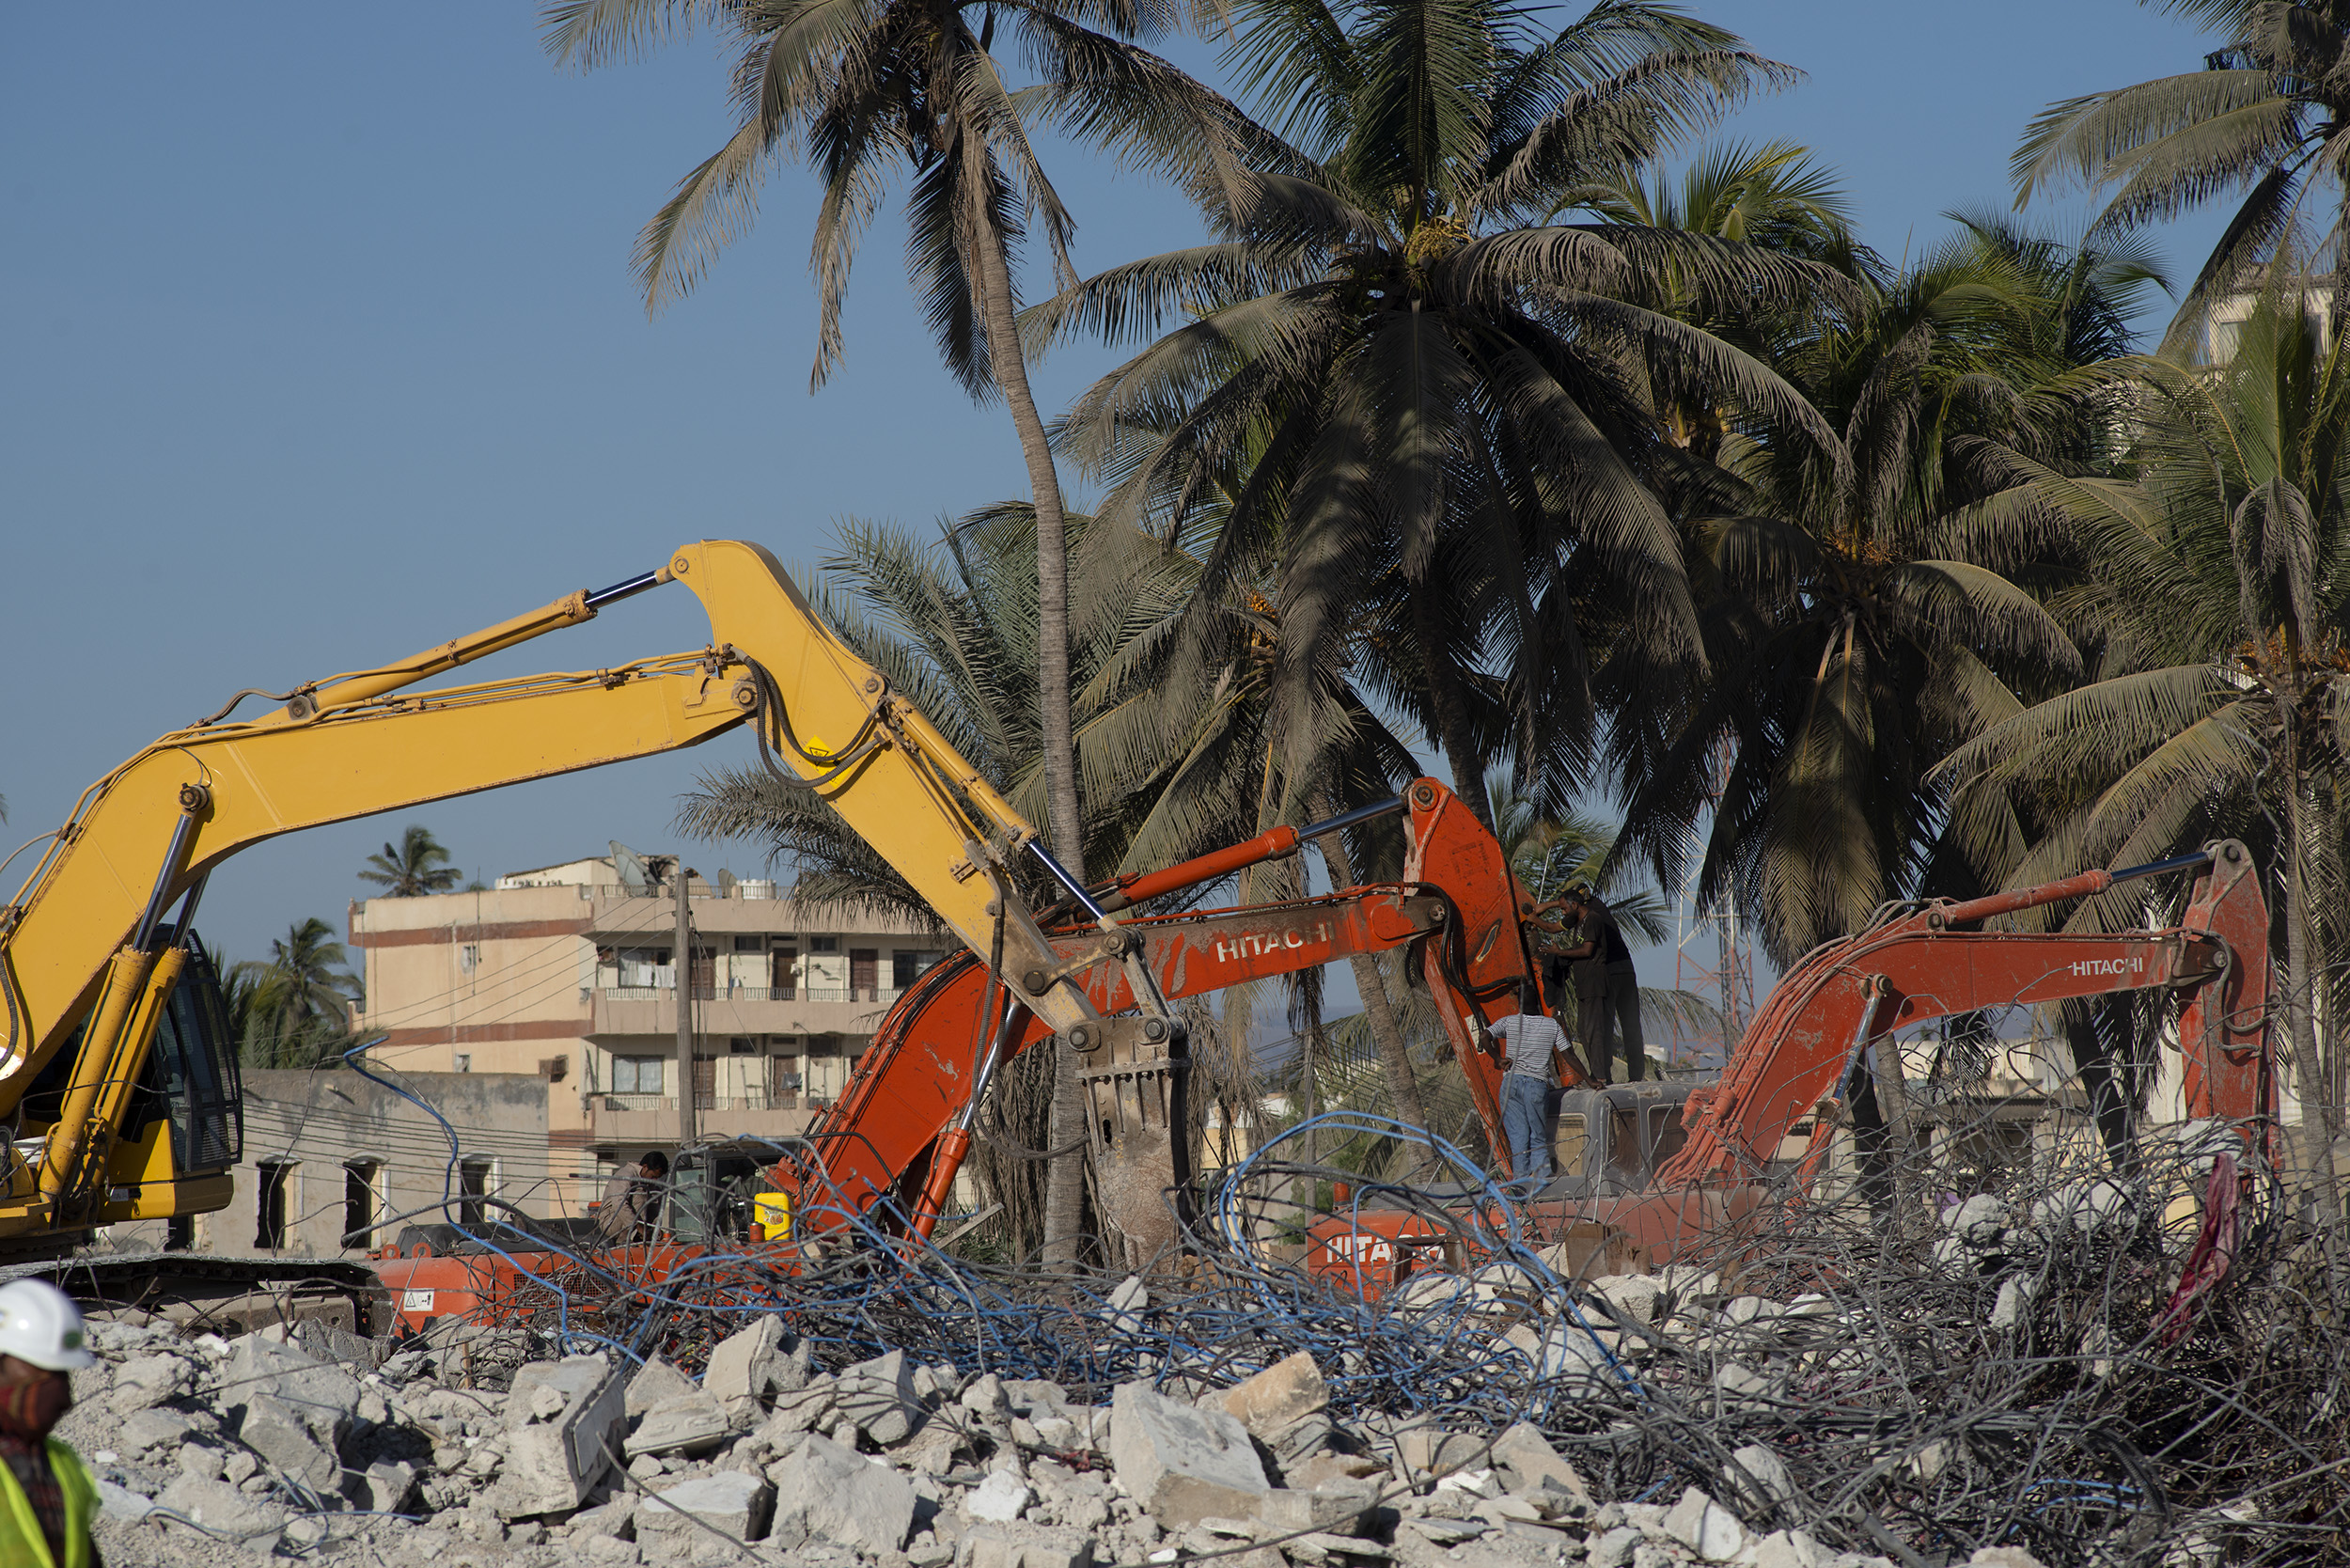 hafa demolition, Salalah